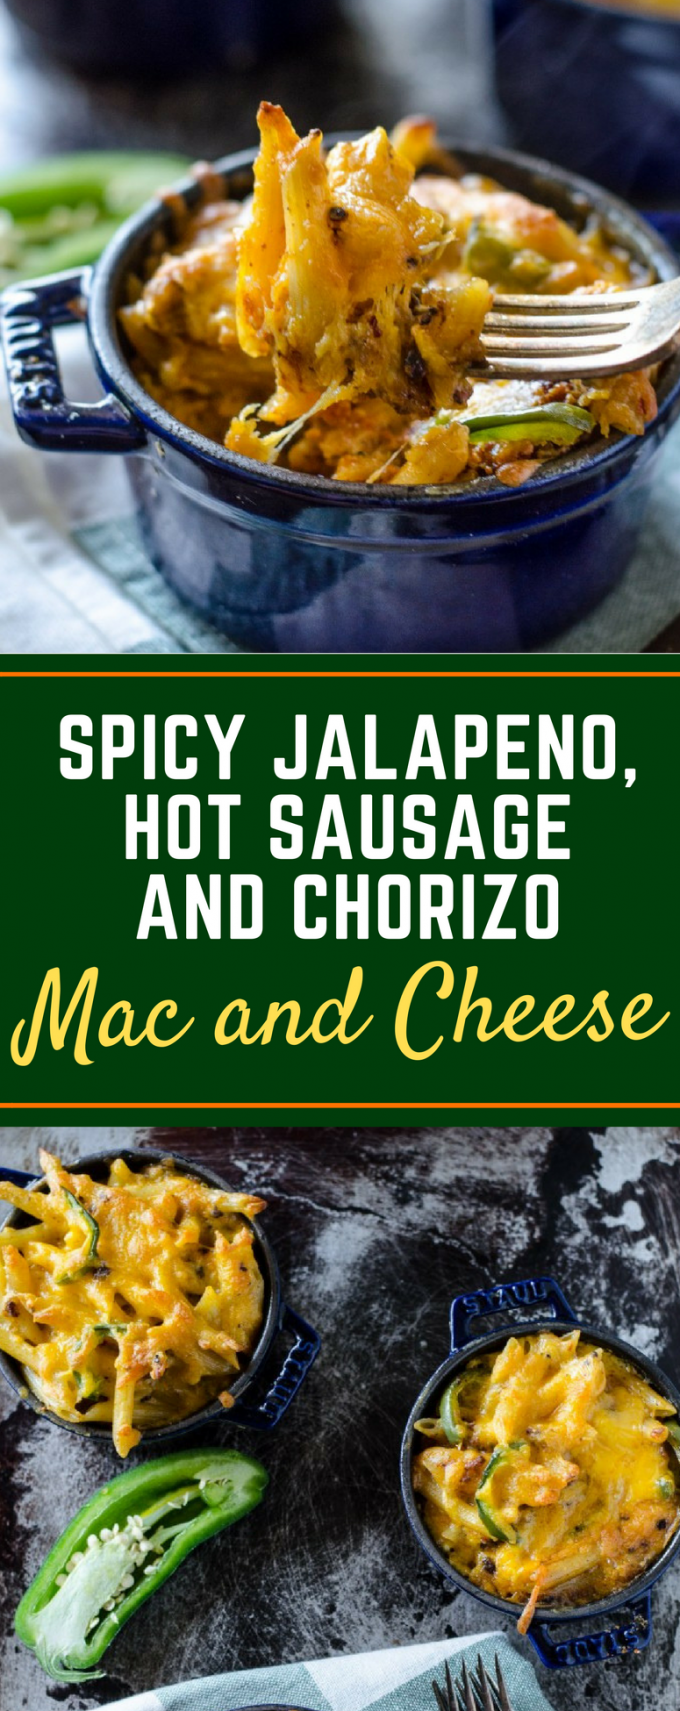 Forget the chicken and bacon, this Spicy Jalapeno, Hot Sausage and Chorizo Mac and Cheese recipe is baked right in the oven with creamy Velveeta cheese for a delicious weeknight meal! You could even throw it in the crockpot to make it easy! #homemademacandcheese #easymacandcheeserecipes #jalapenomacandcheese #gogogogourmet via @gogogogourmet